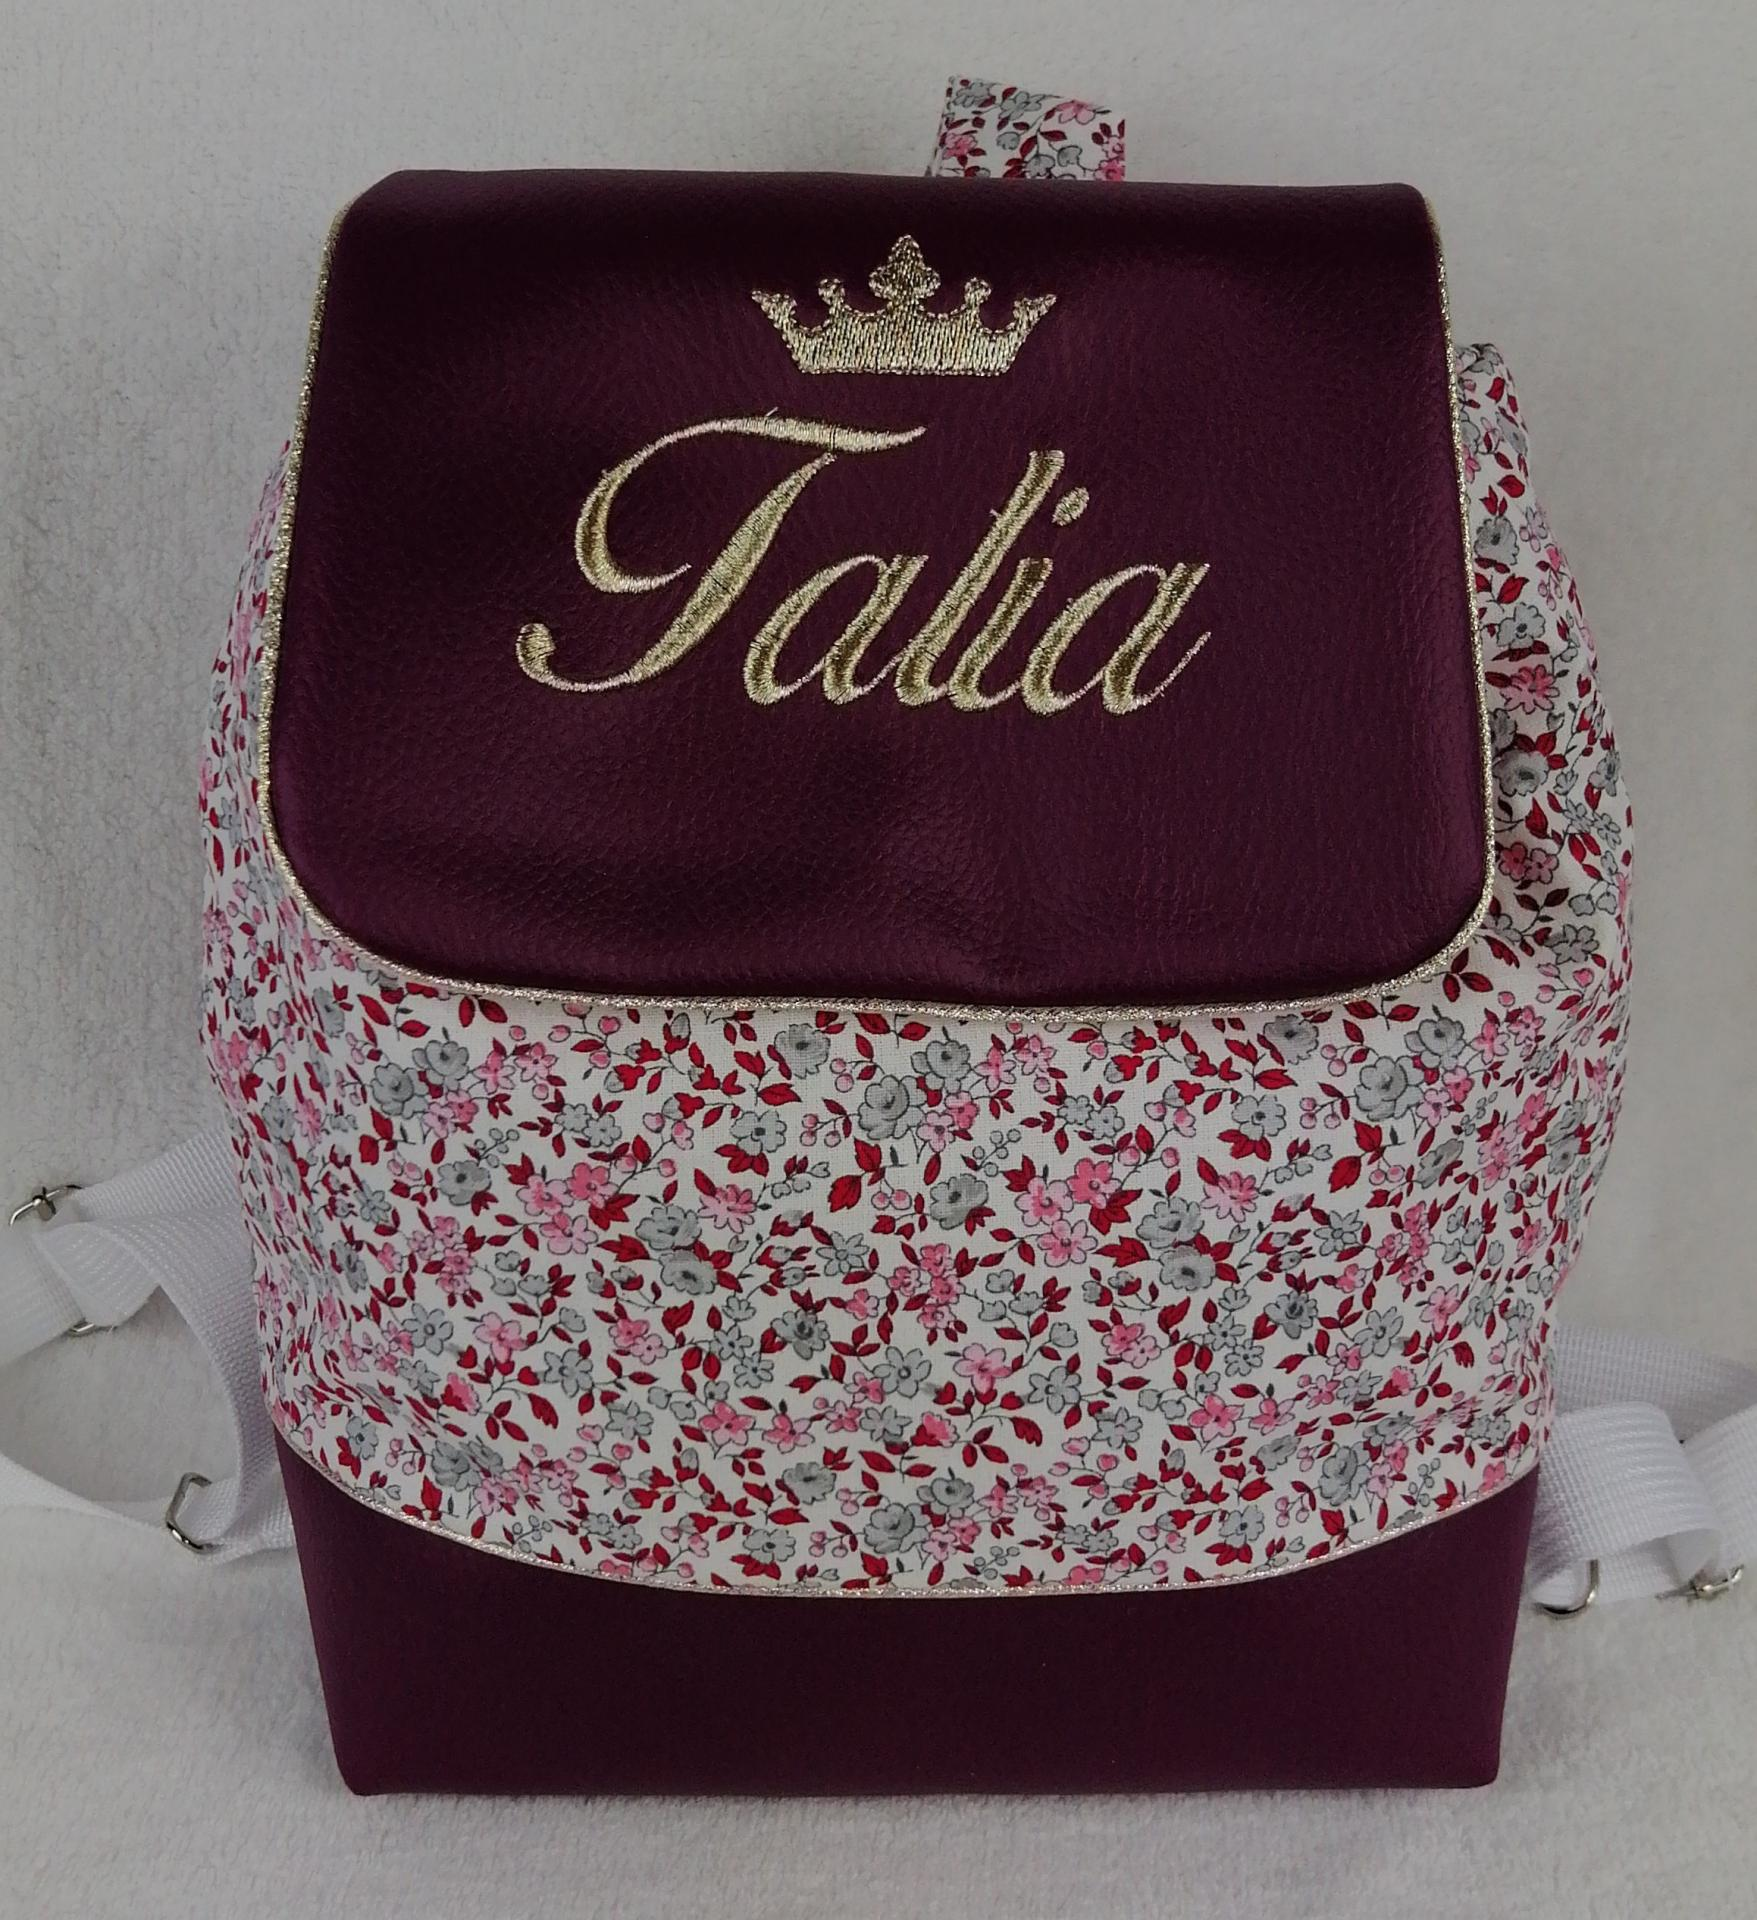 Sac a dos personnalise prune liberty rouge gris